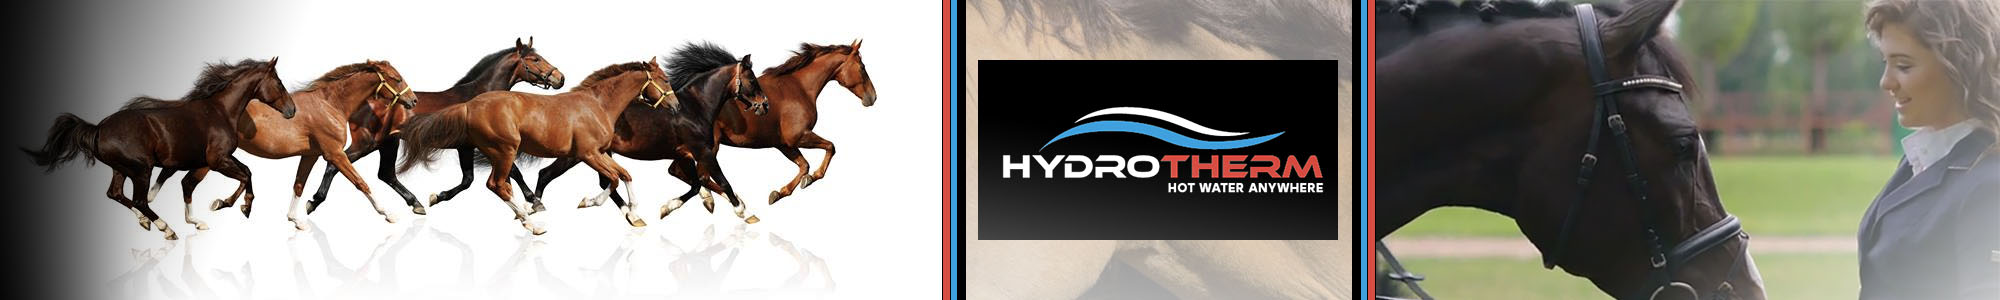 Hydro-Therm Ltd.